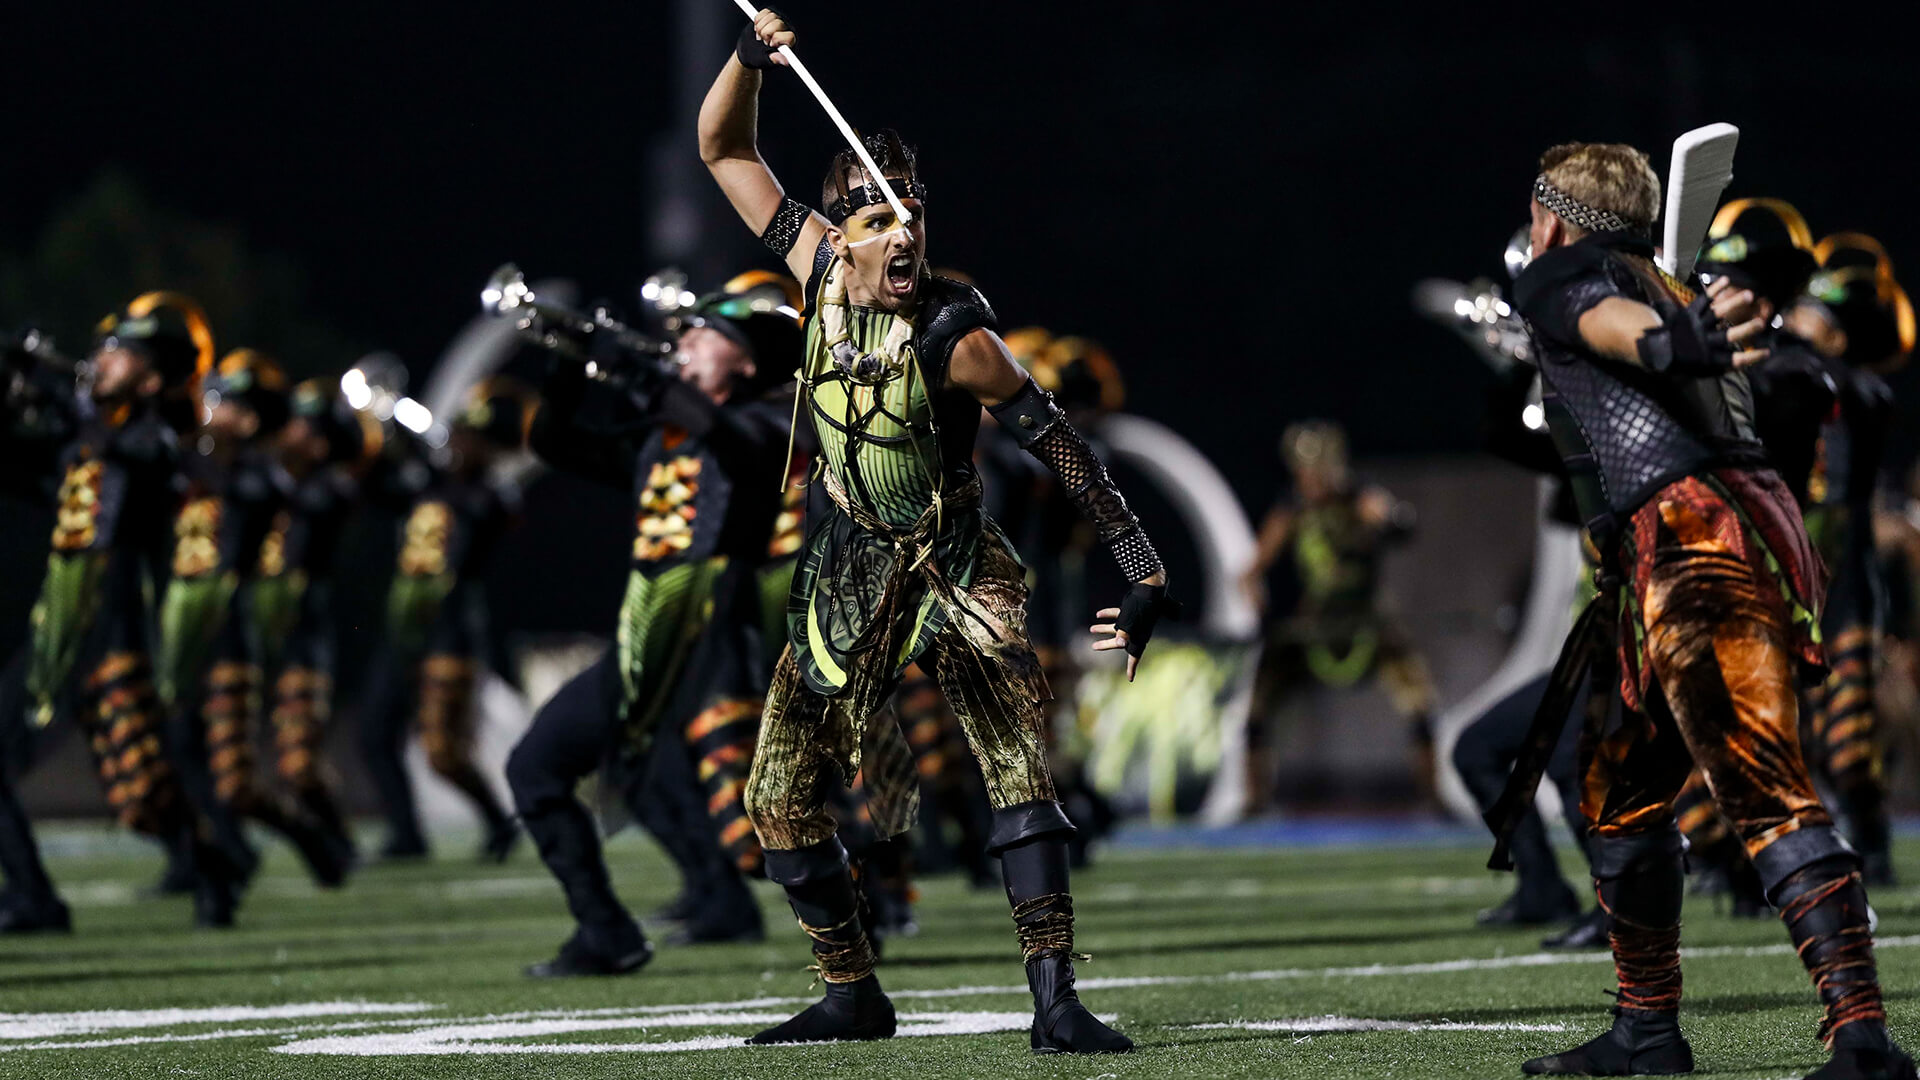 Carolina Crown roars through Allentown